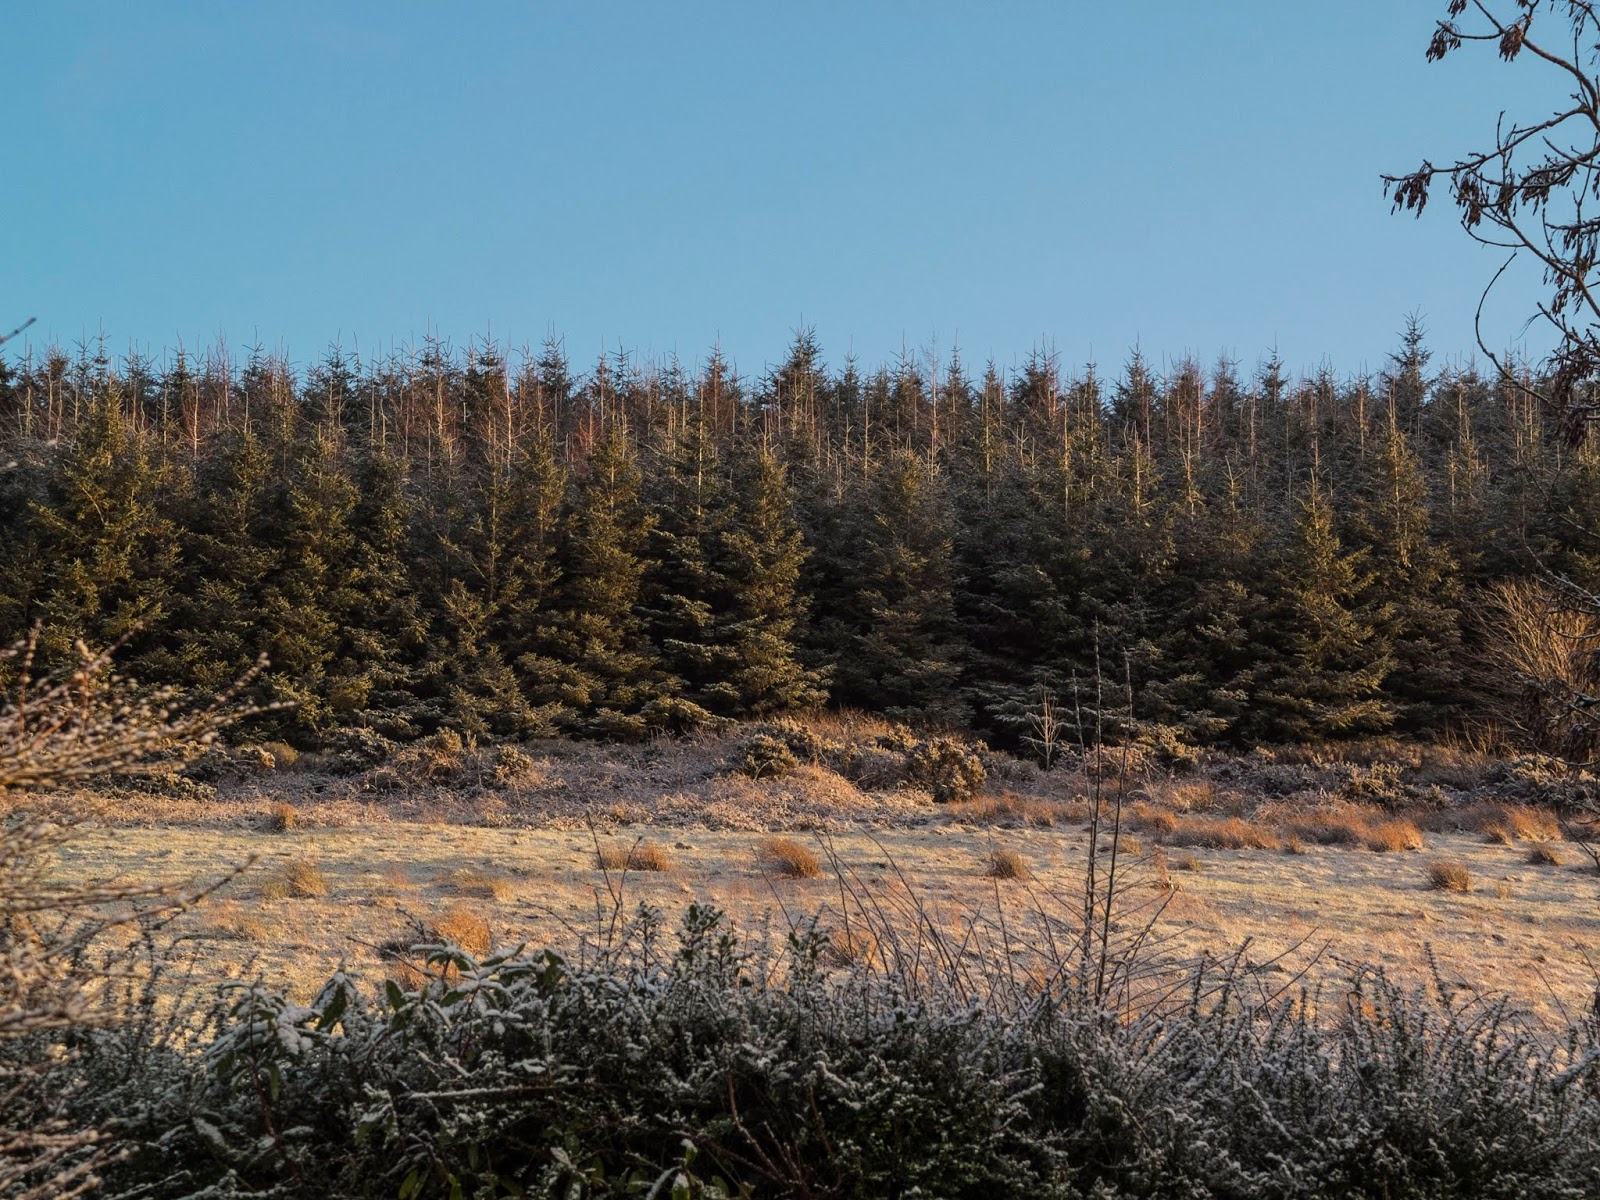 Snow covered forestry on top of a mountain at sunset in North Cork.